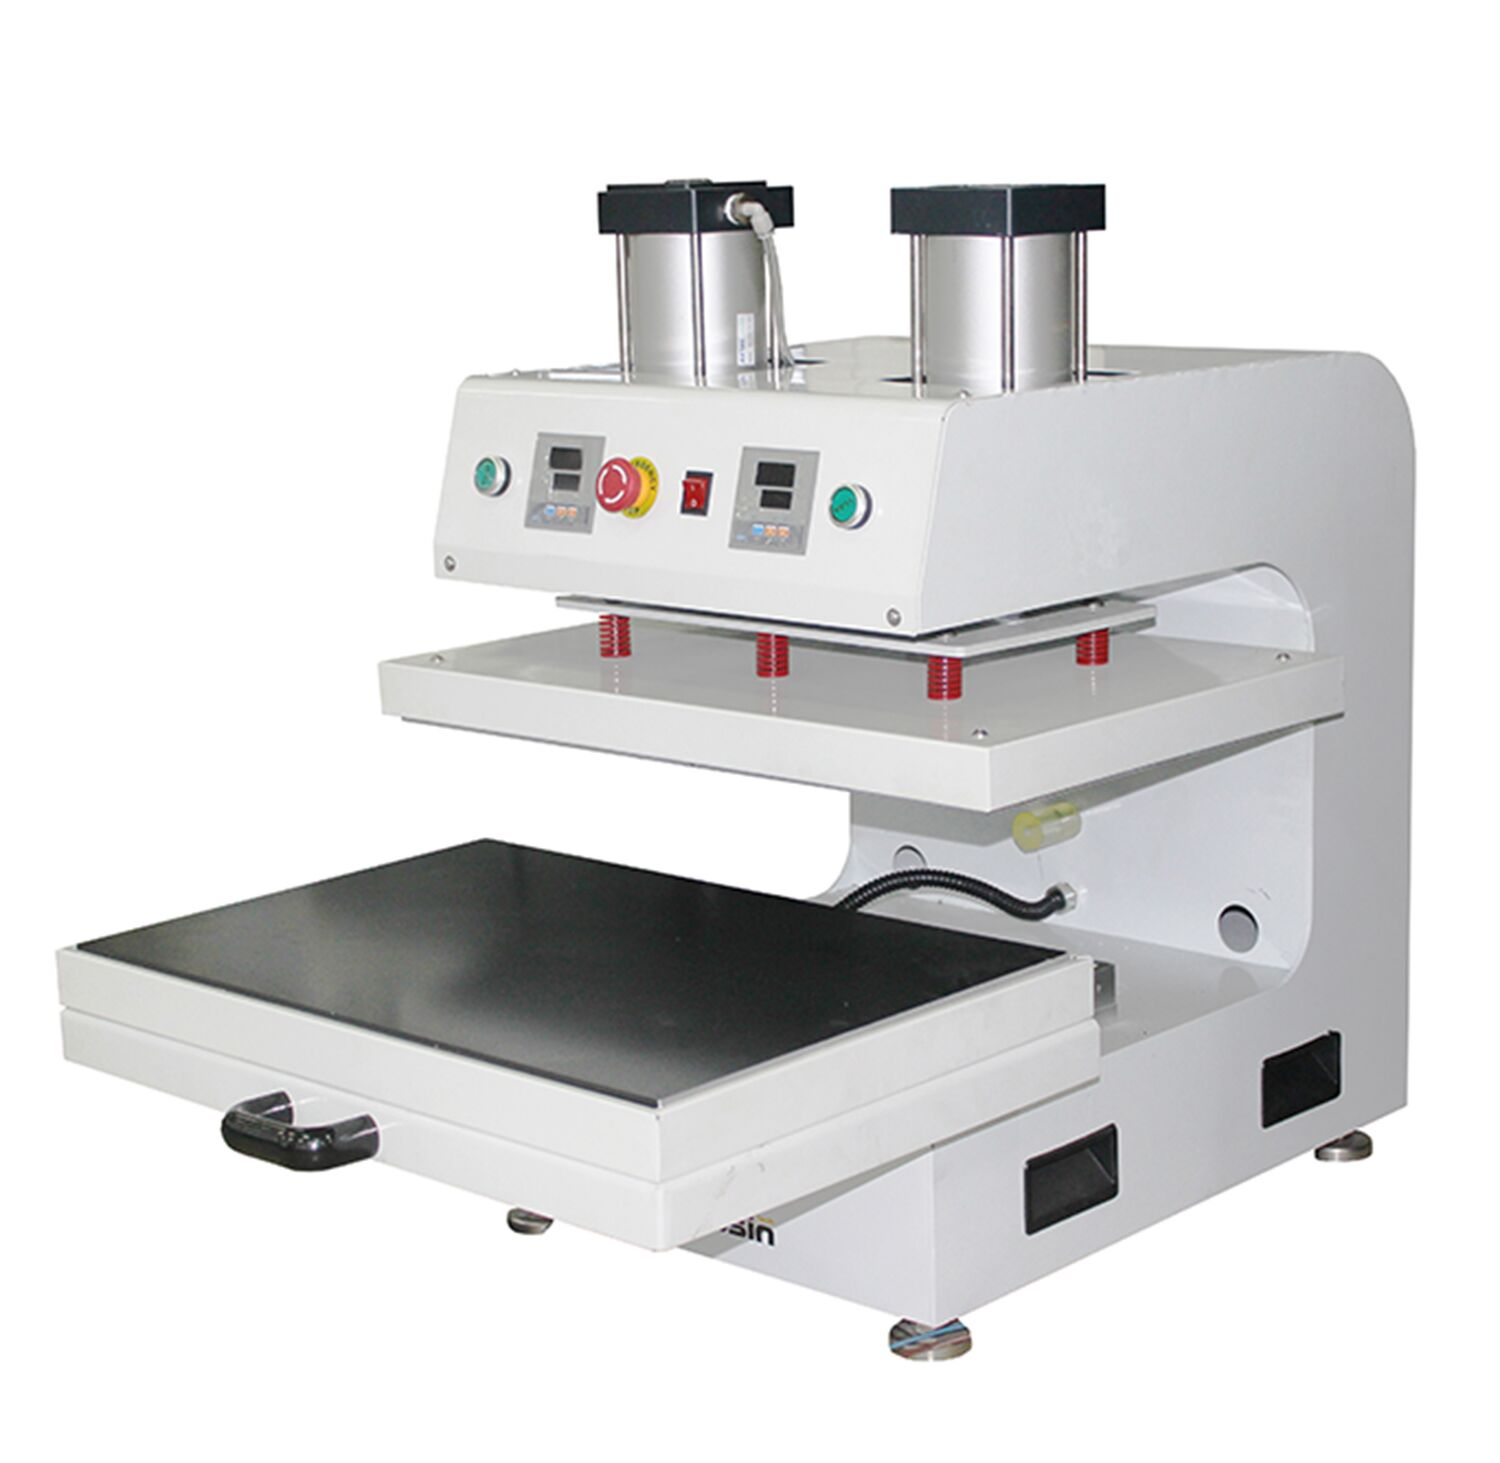 Auplex Large Size Pneumatic Auto Dual Heated Rosin Heat Press Machine with Slide-out Bottom Featured Image